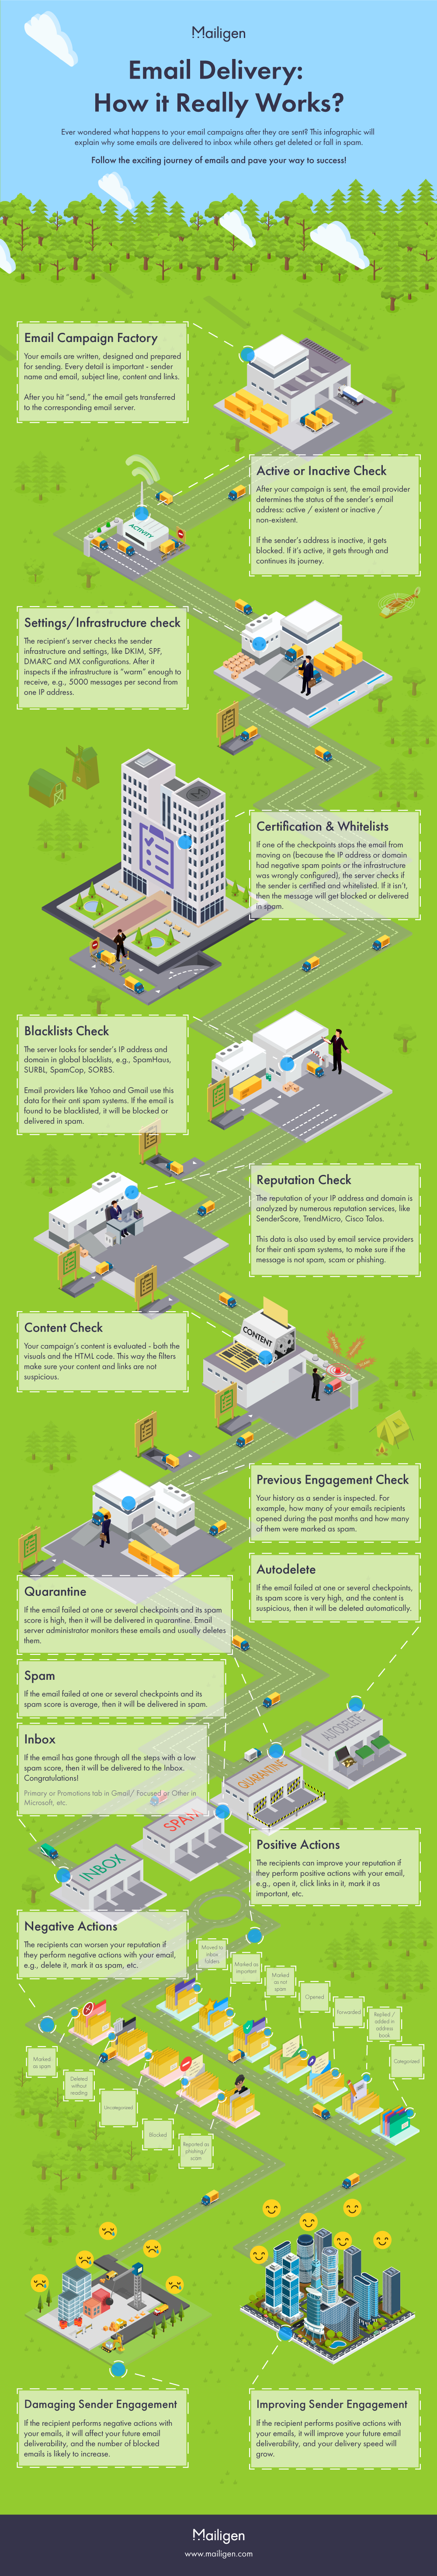 Email delivery: How it Works or why it fails infographic